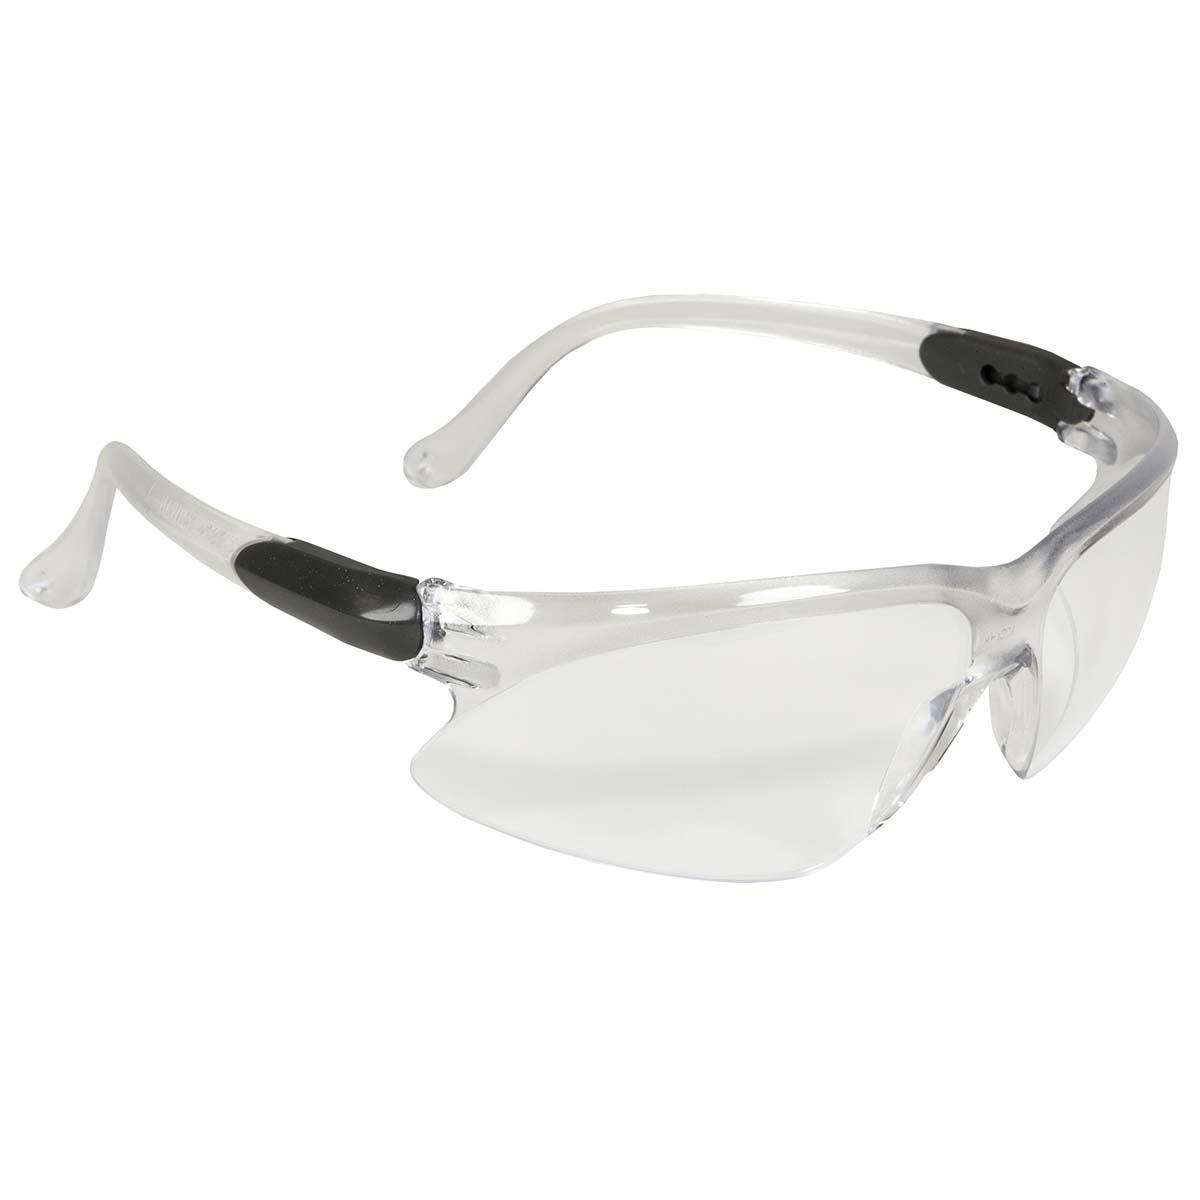 Jackson Safety Visio Safety Eyewear (14471), Economical Glasses, UV Protection, Anti-Fog, Clear Lenses, 3-Point Extendable Silver Temples, 12 Pairs / Case